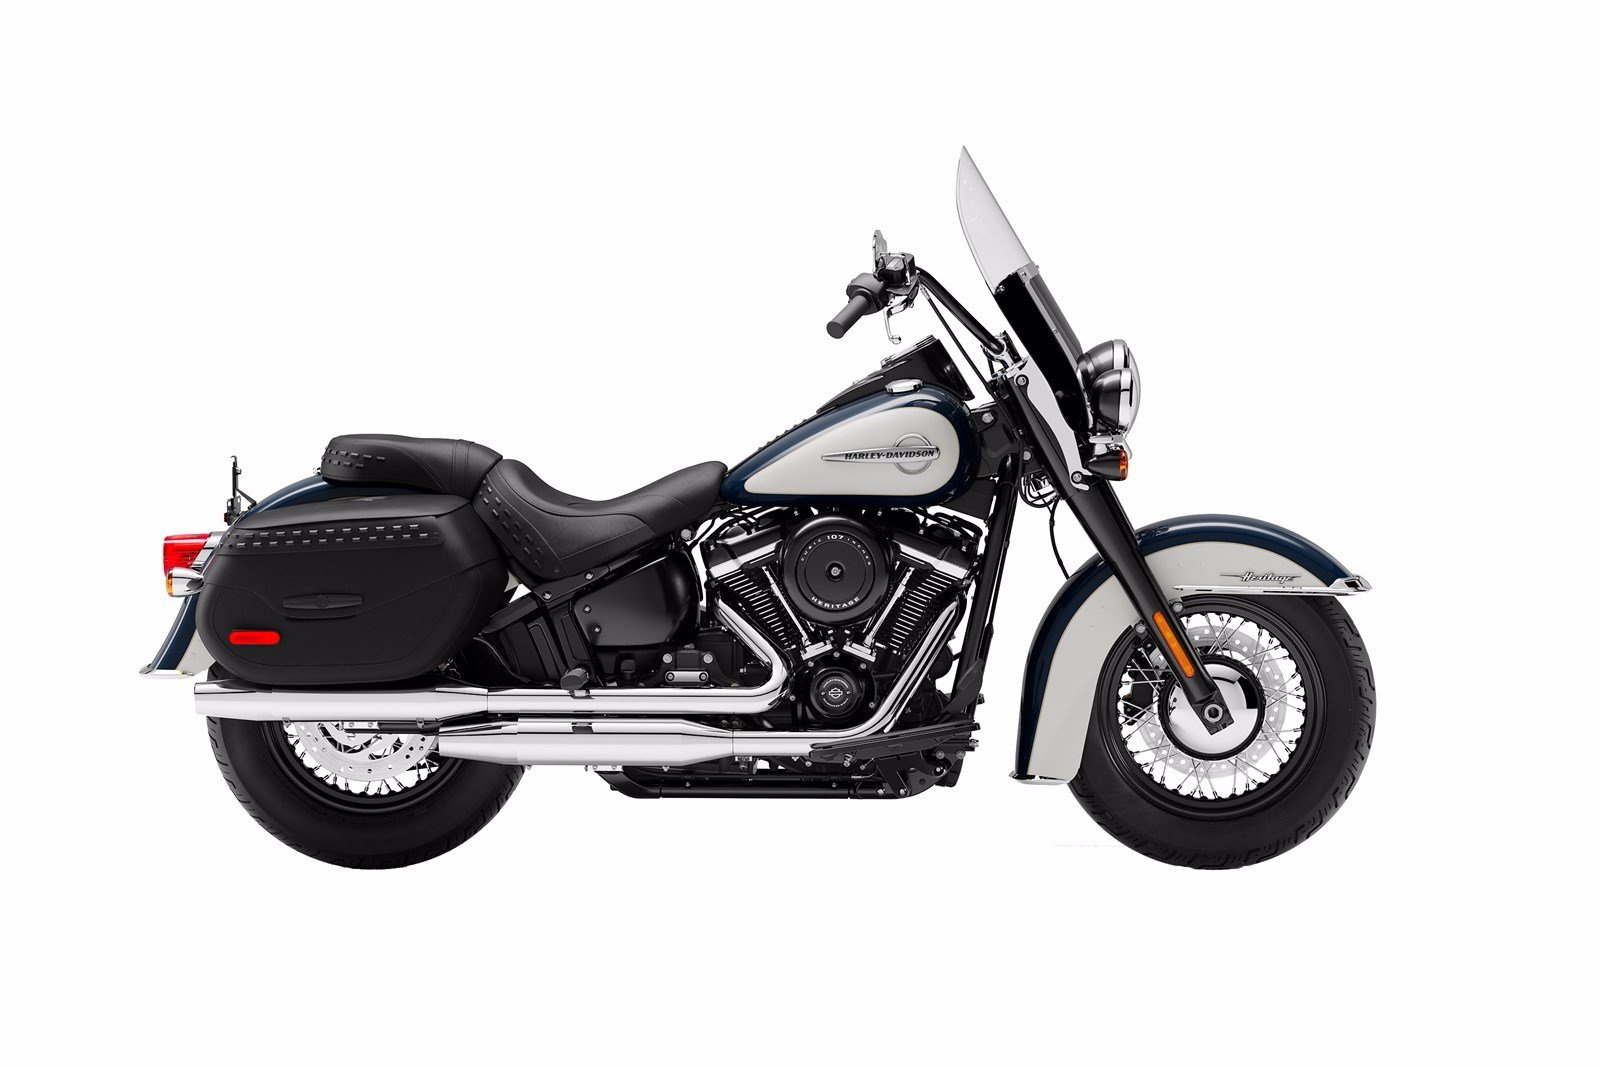 New 2019 Harley-Davidson Softail Heritage Classic FLHC